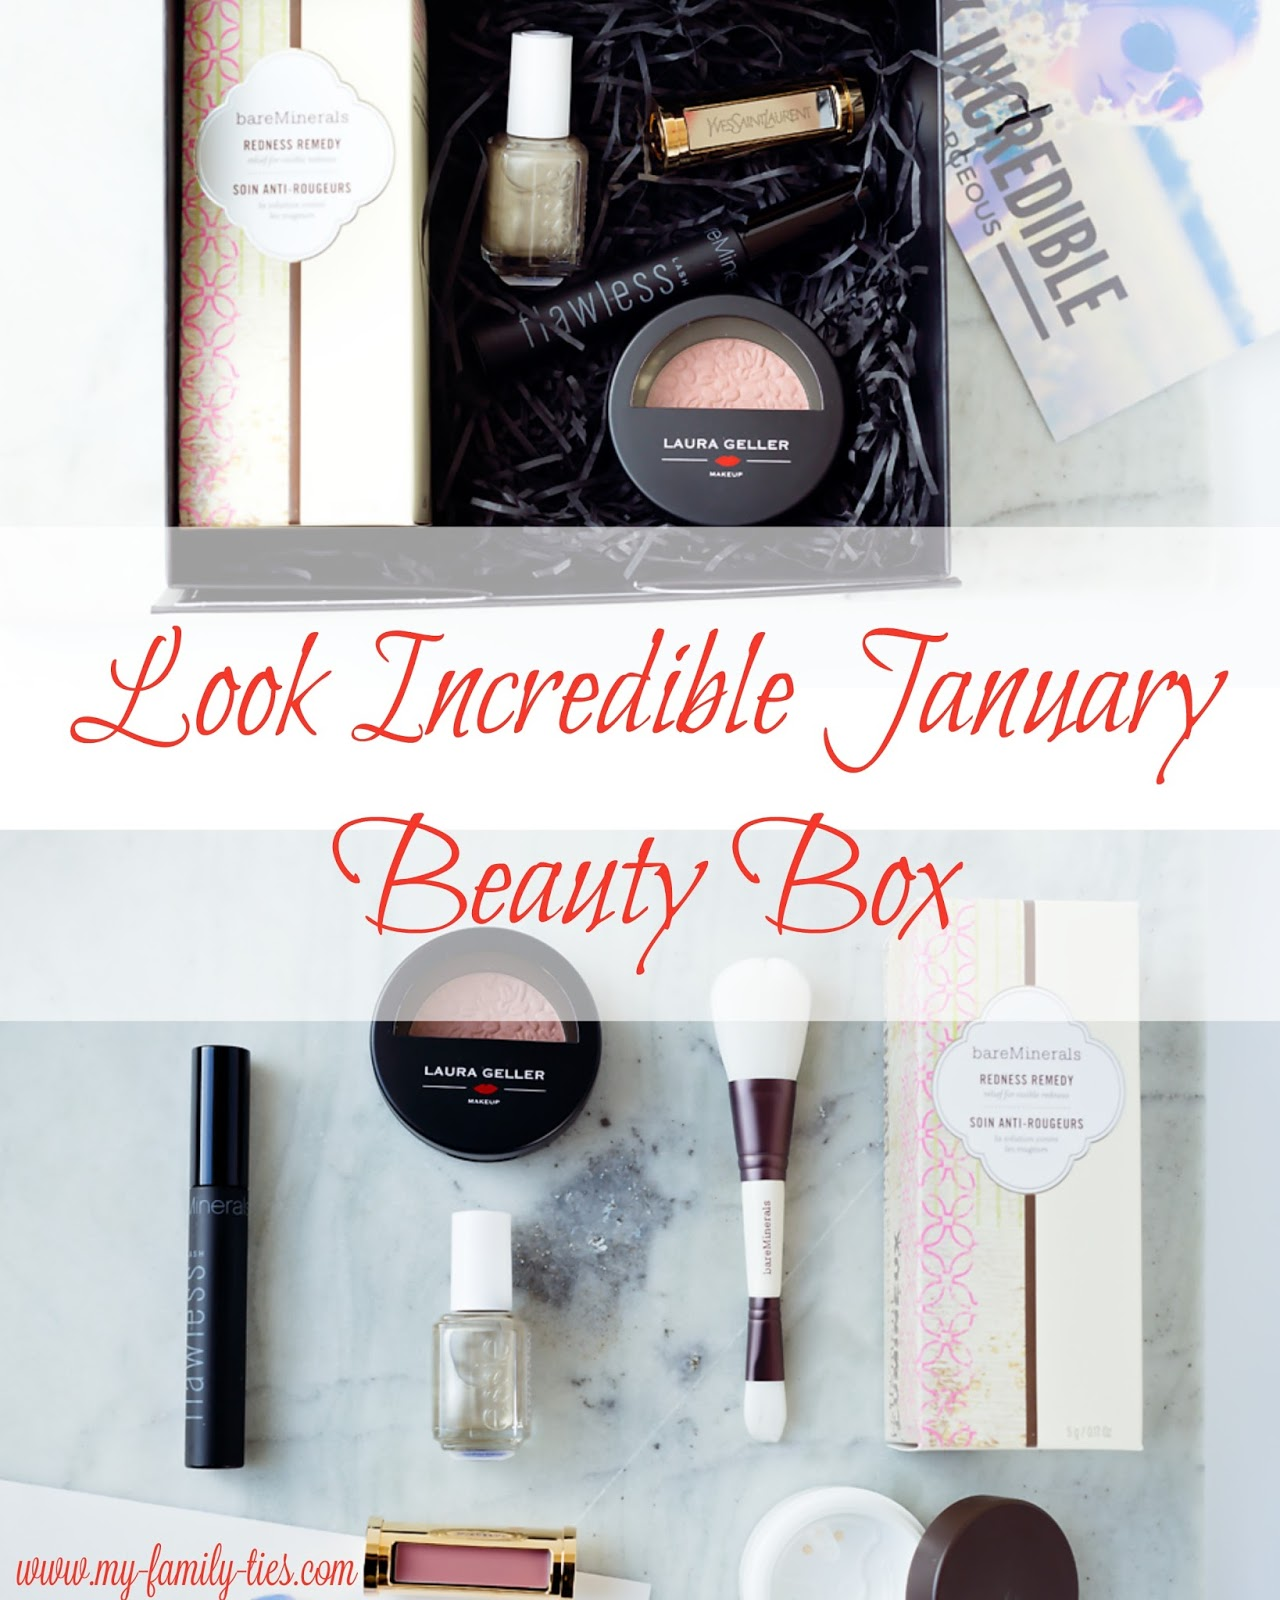 Look incredible Beauty Box Review January - Photos By My Family Ties Blog www.my-family-ties.com